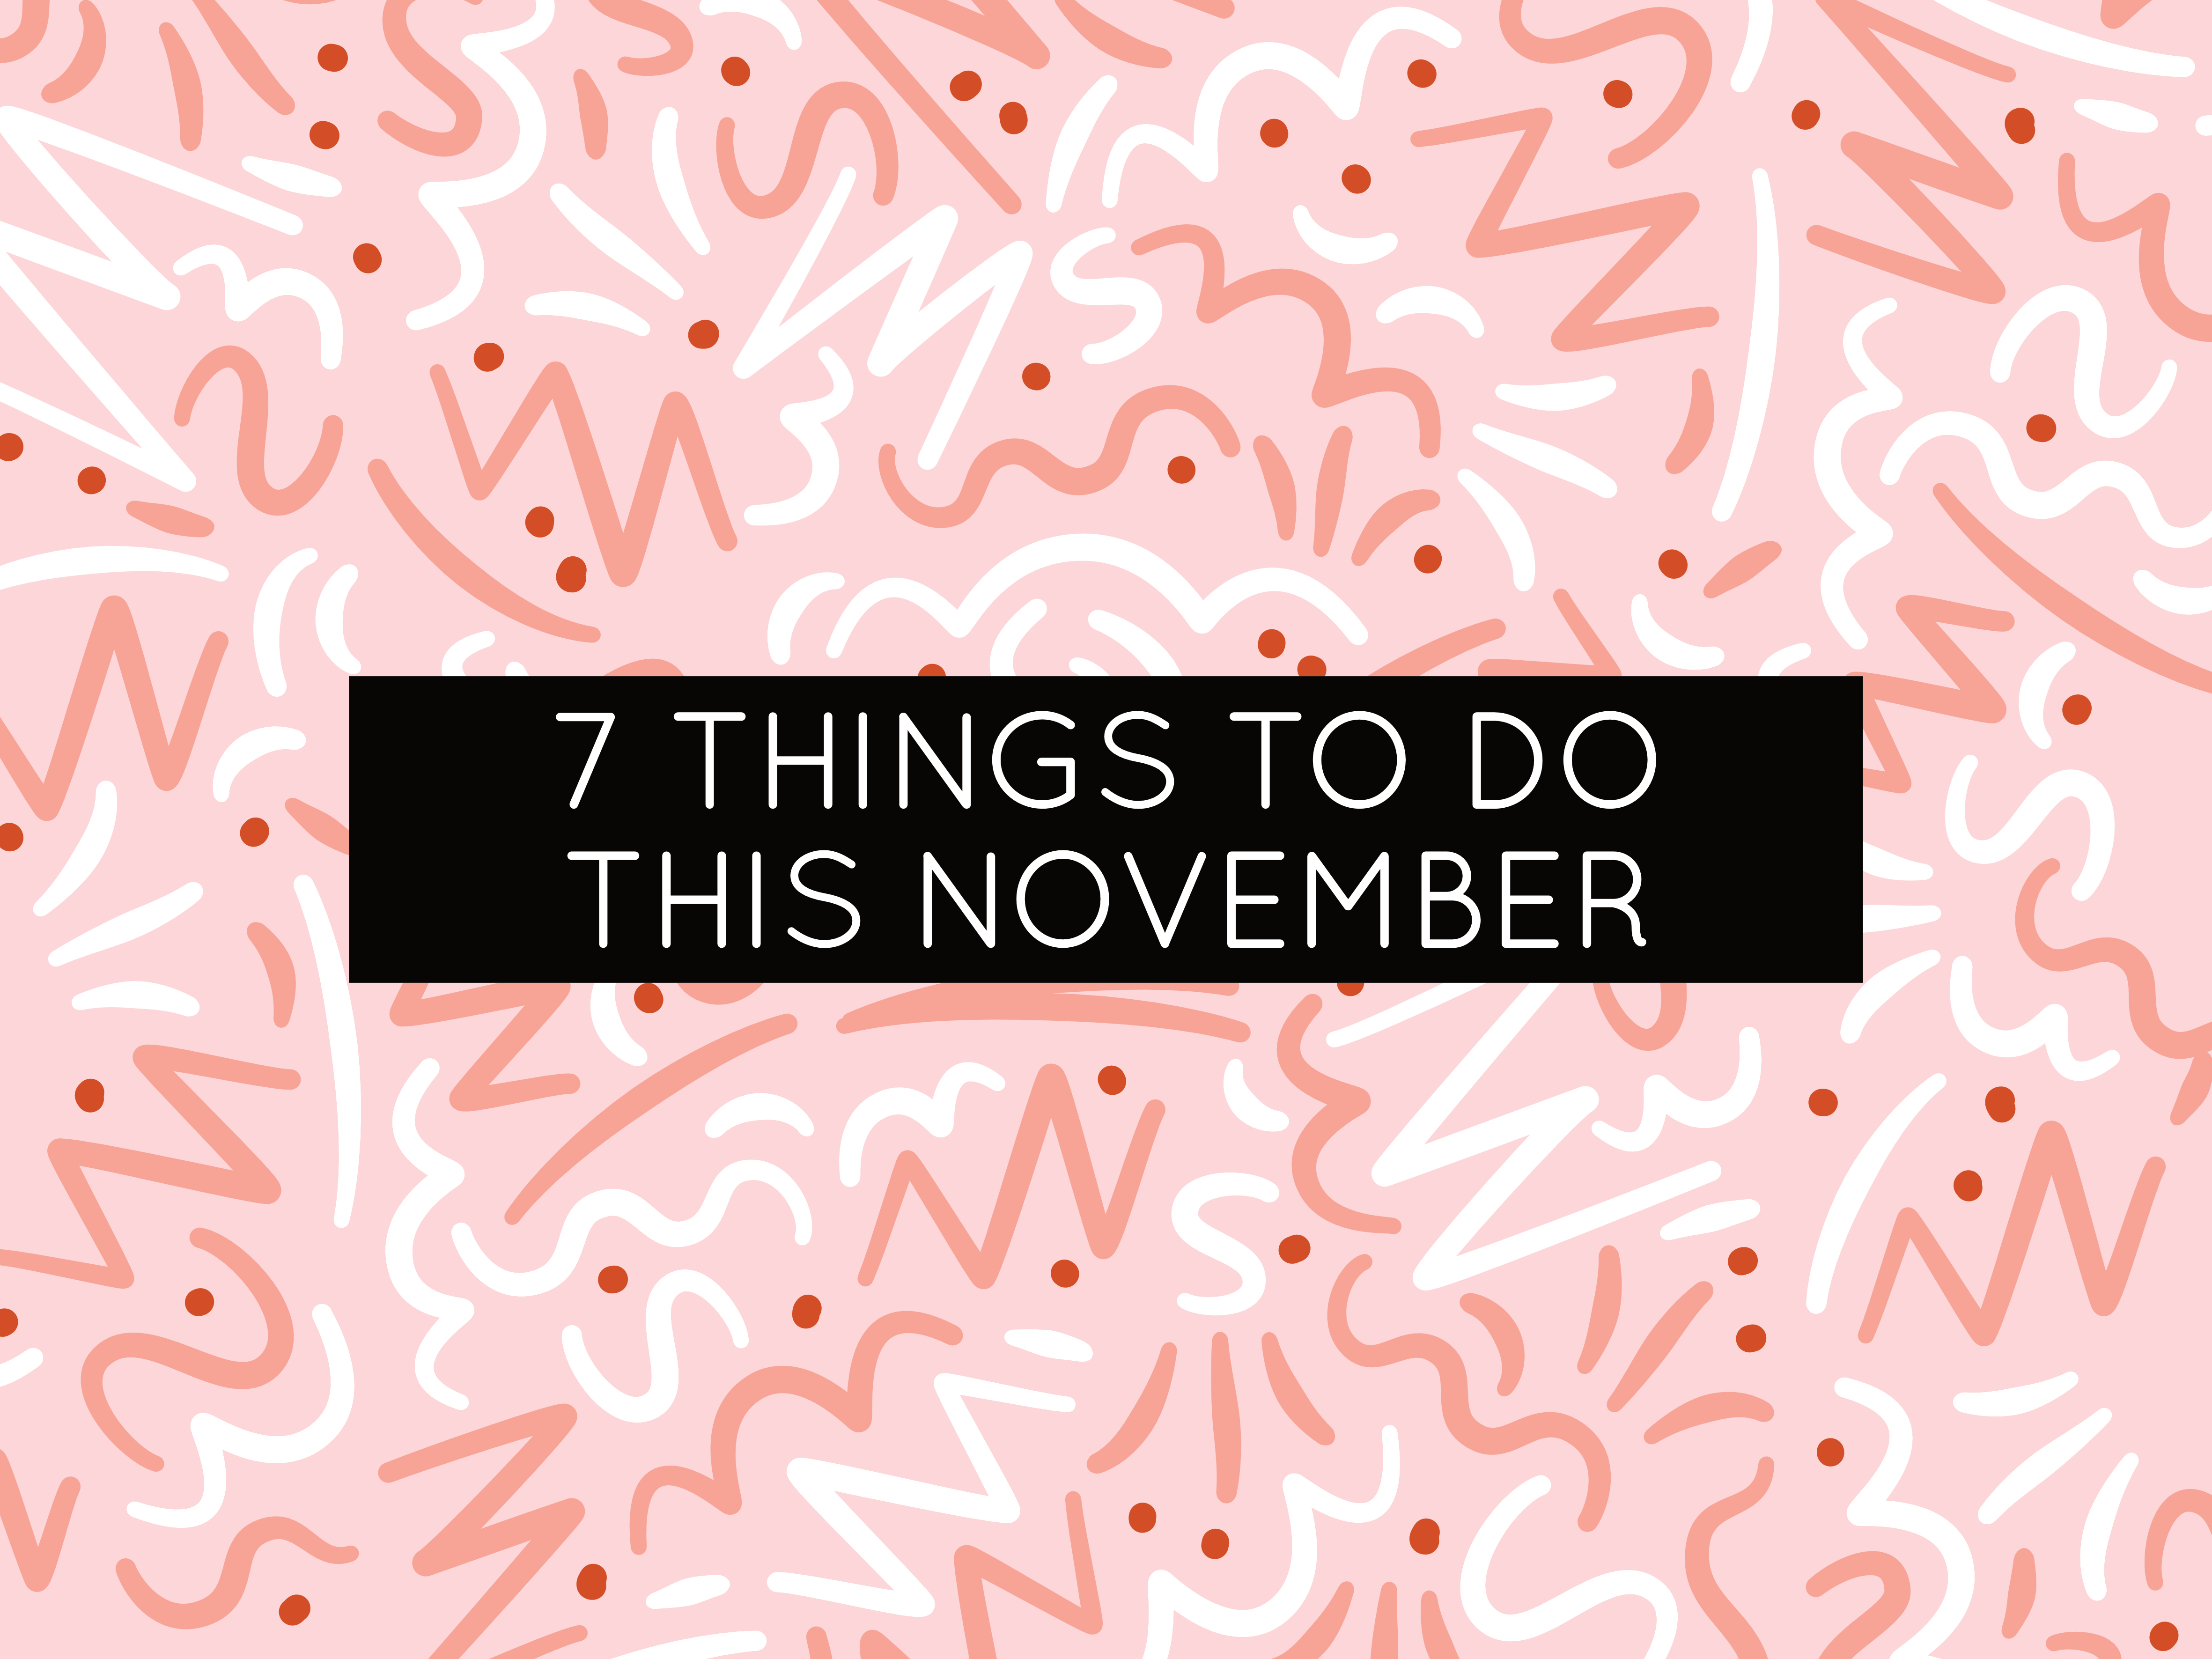 7 things to do this november